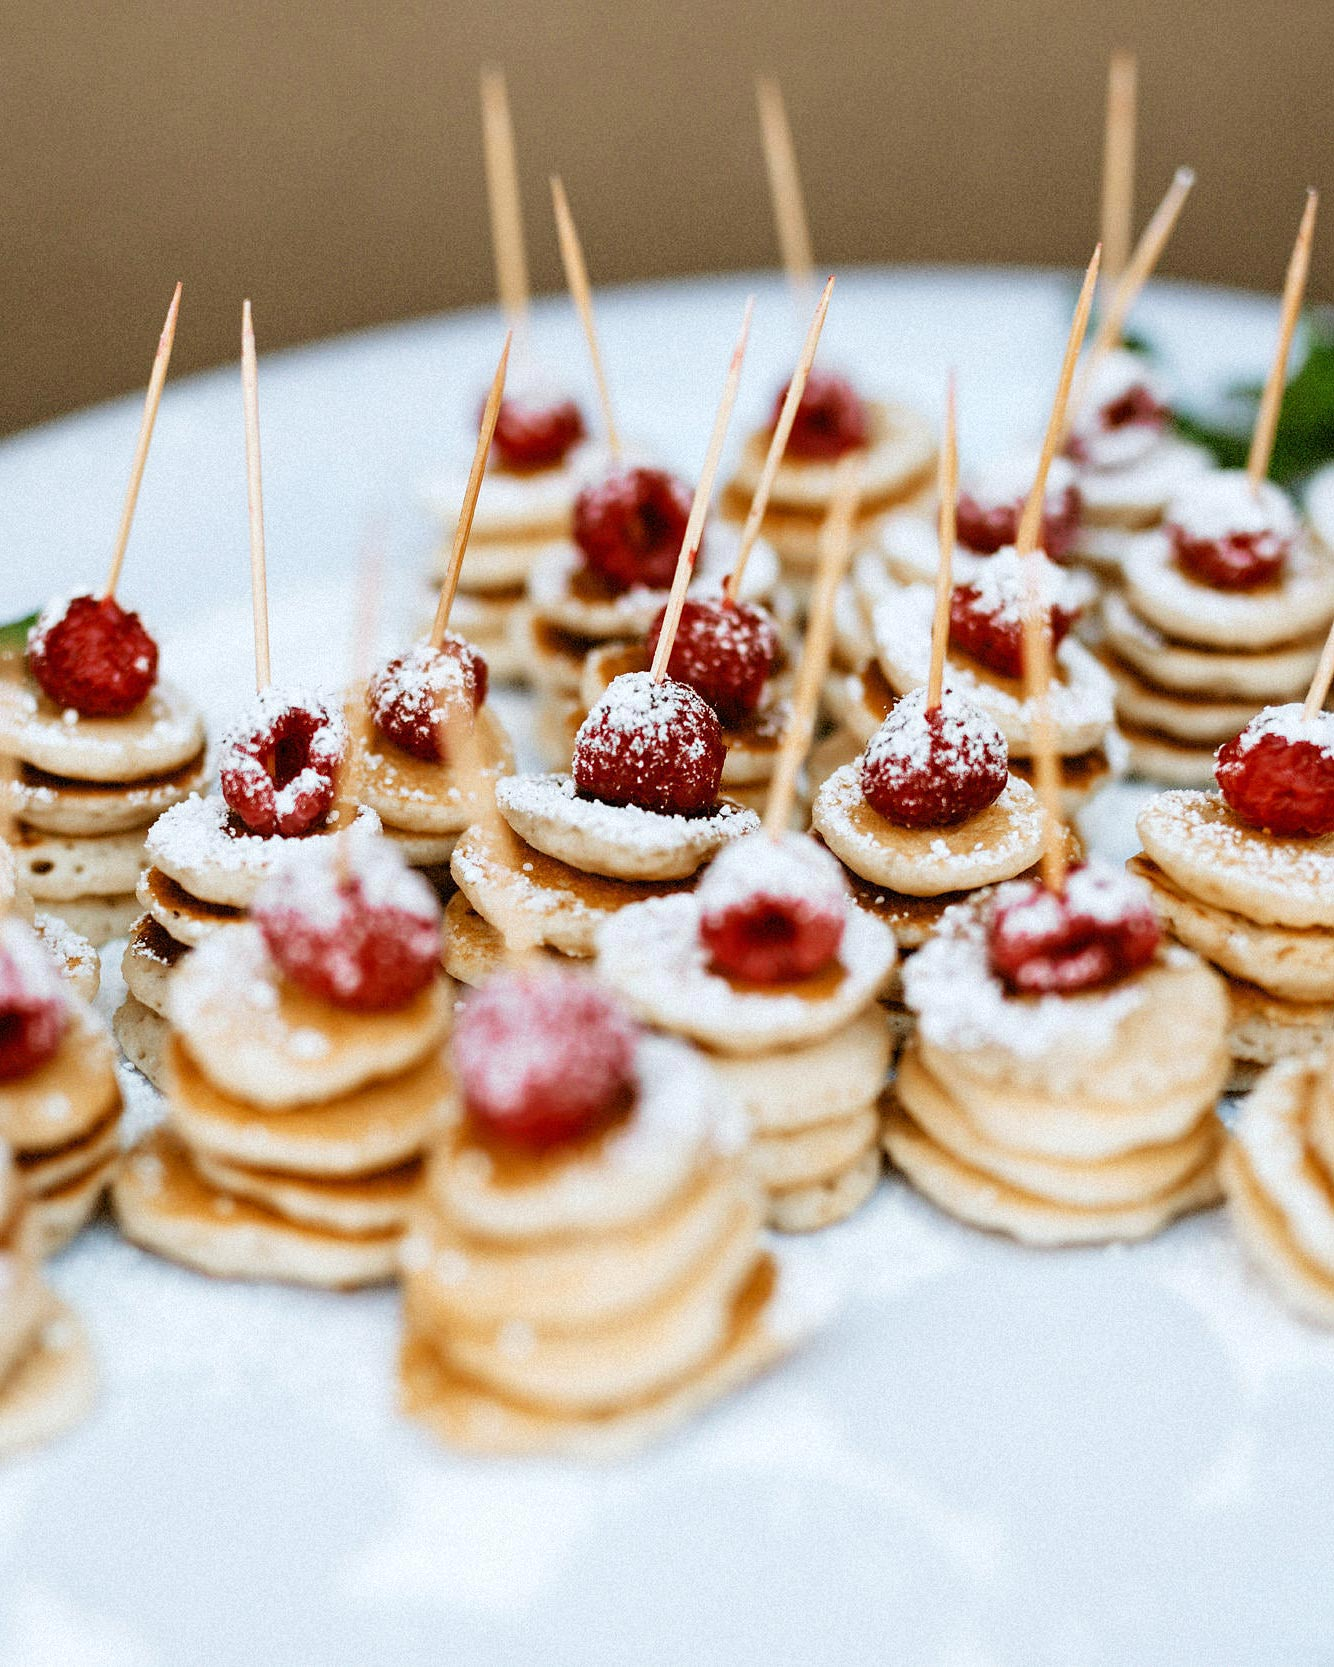 Wedding Website Url Ideas: How To Plan The Perfect Brunch Wedding